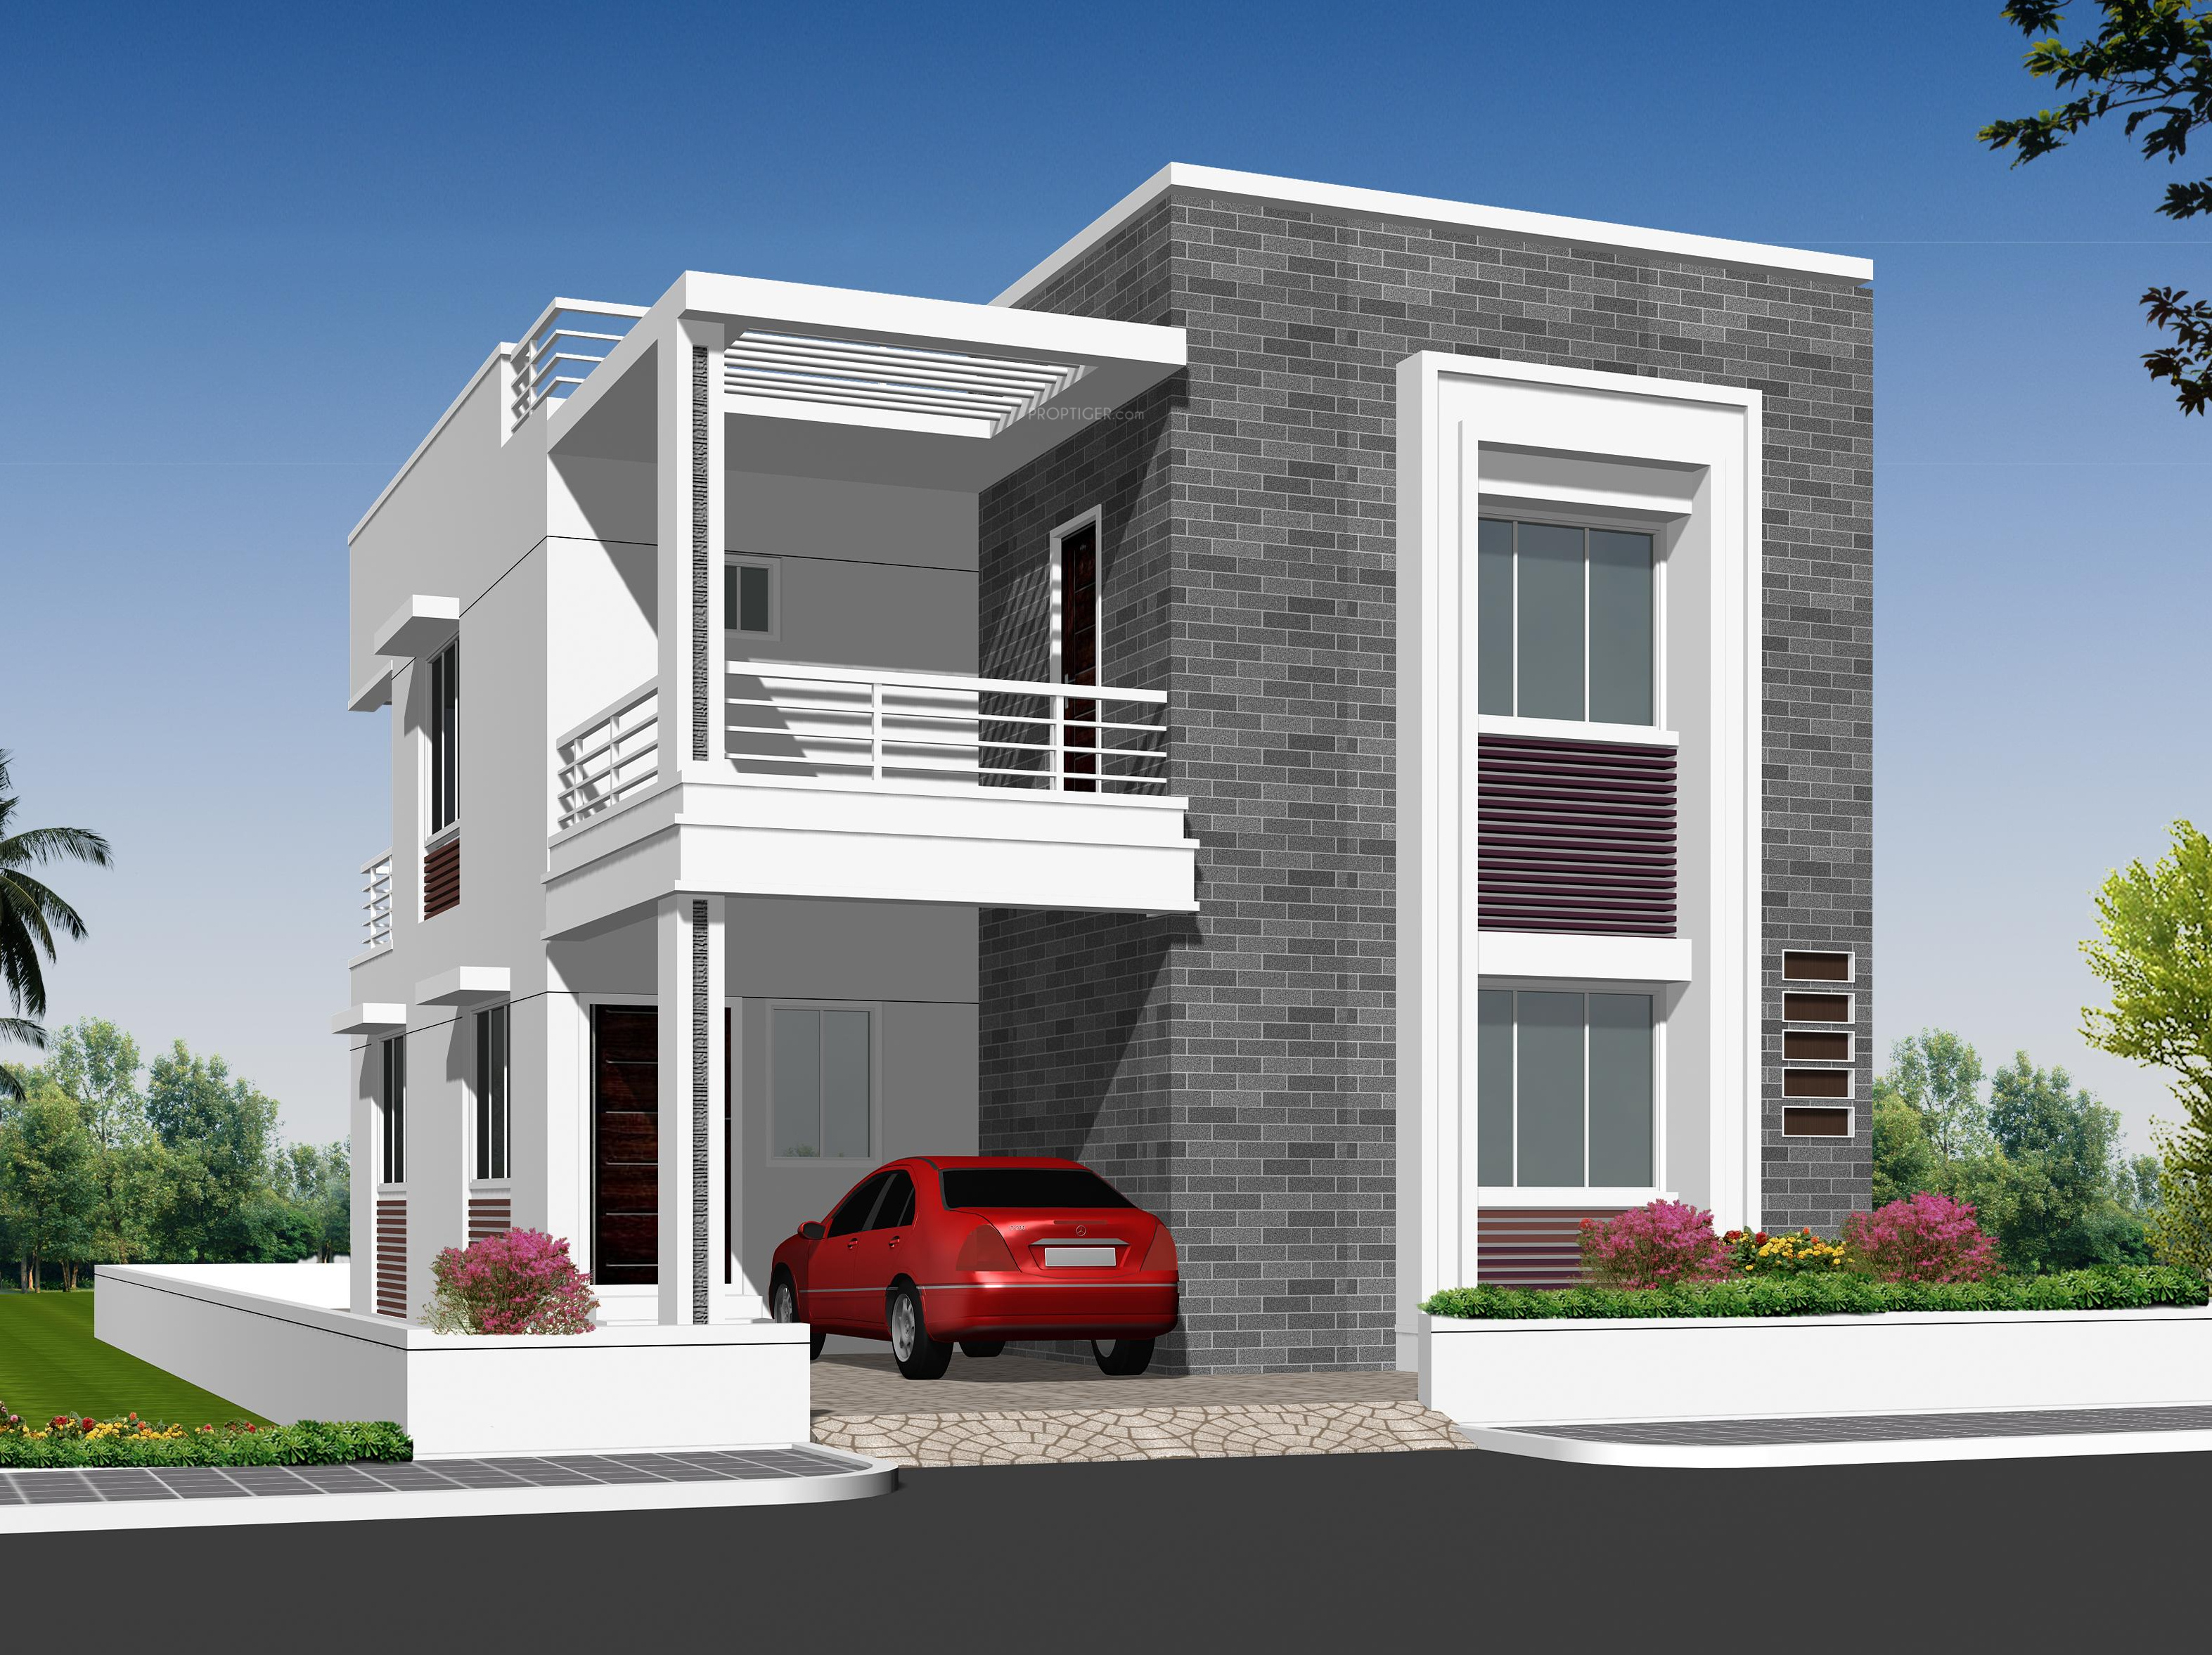 Small house elevation designs in hyderabad joy studio design gallery best design Home design and elevation